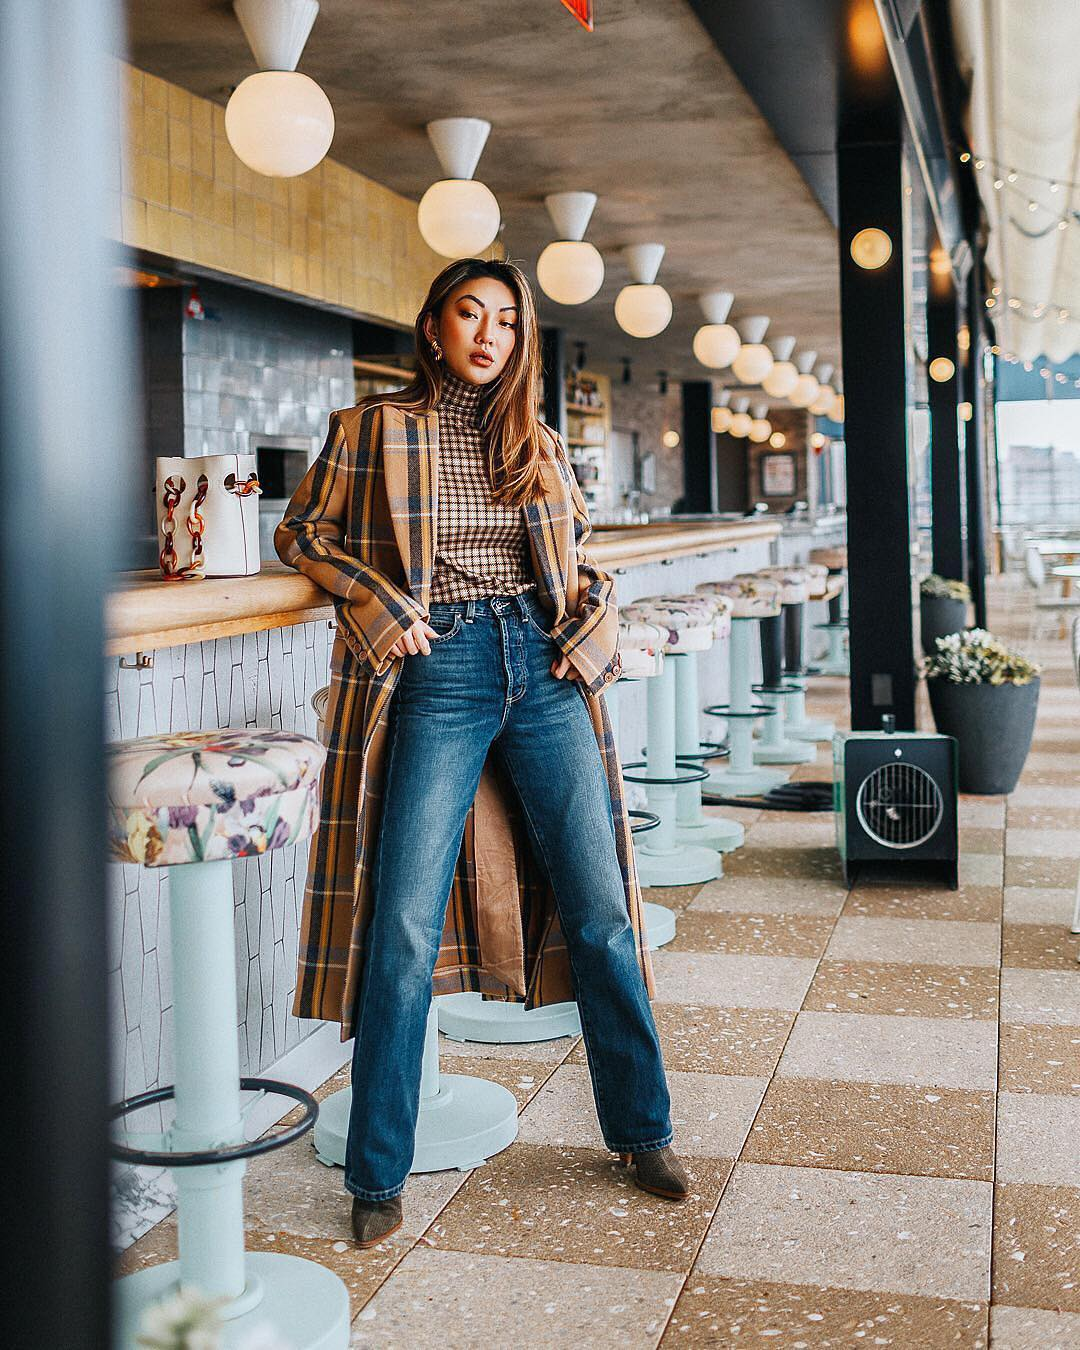 Long Plaid Coat With Plaid Turtleneck And Regular Jeans For Fall 2020